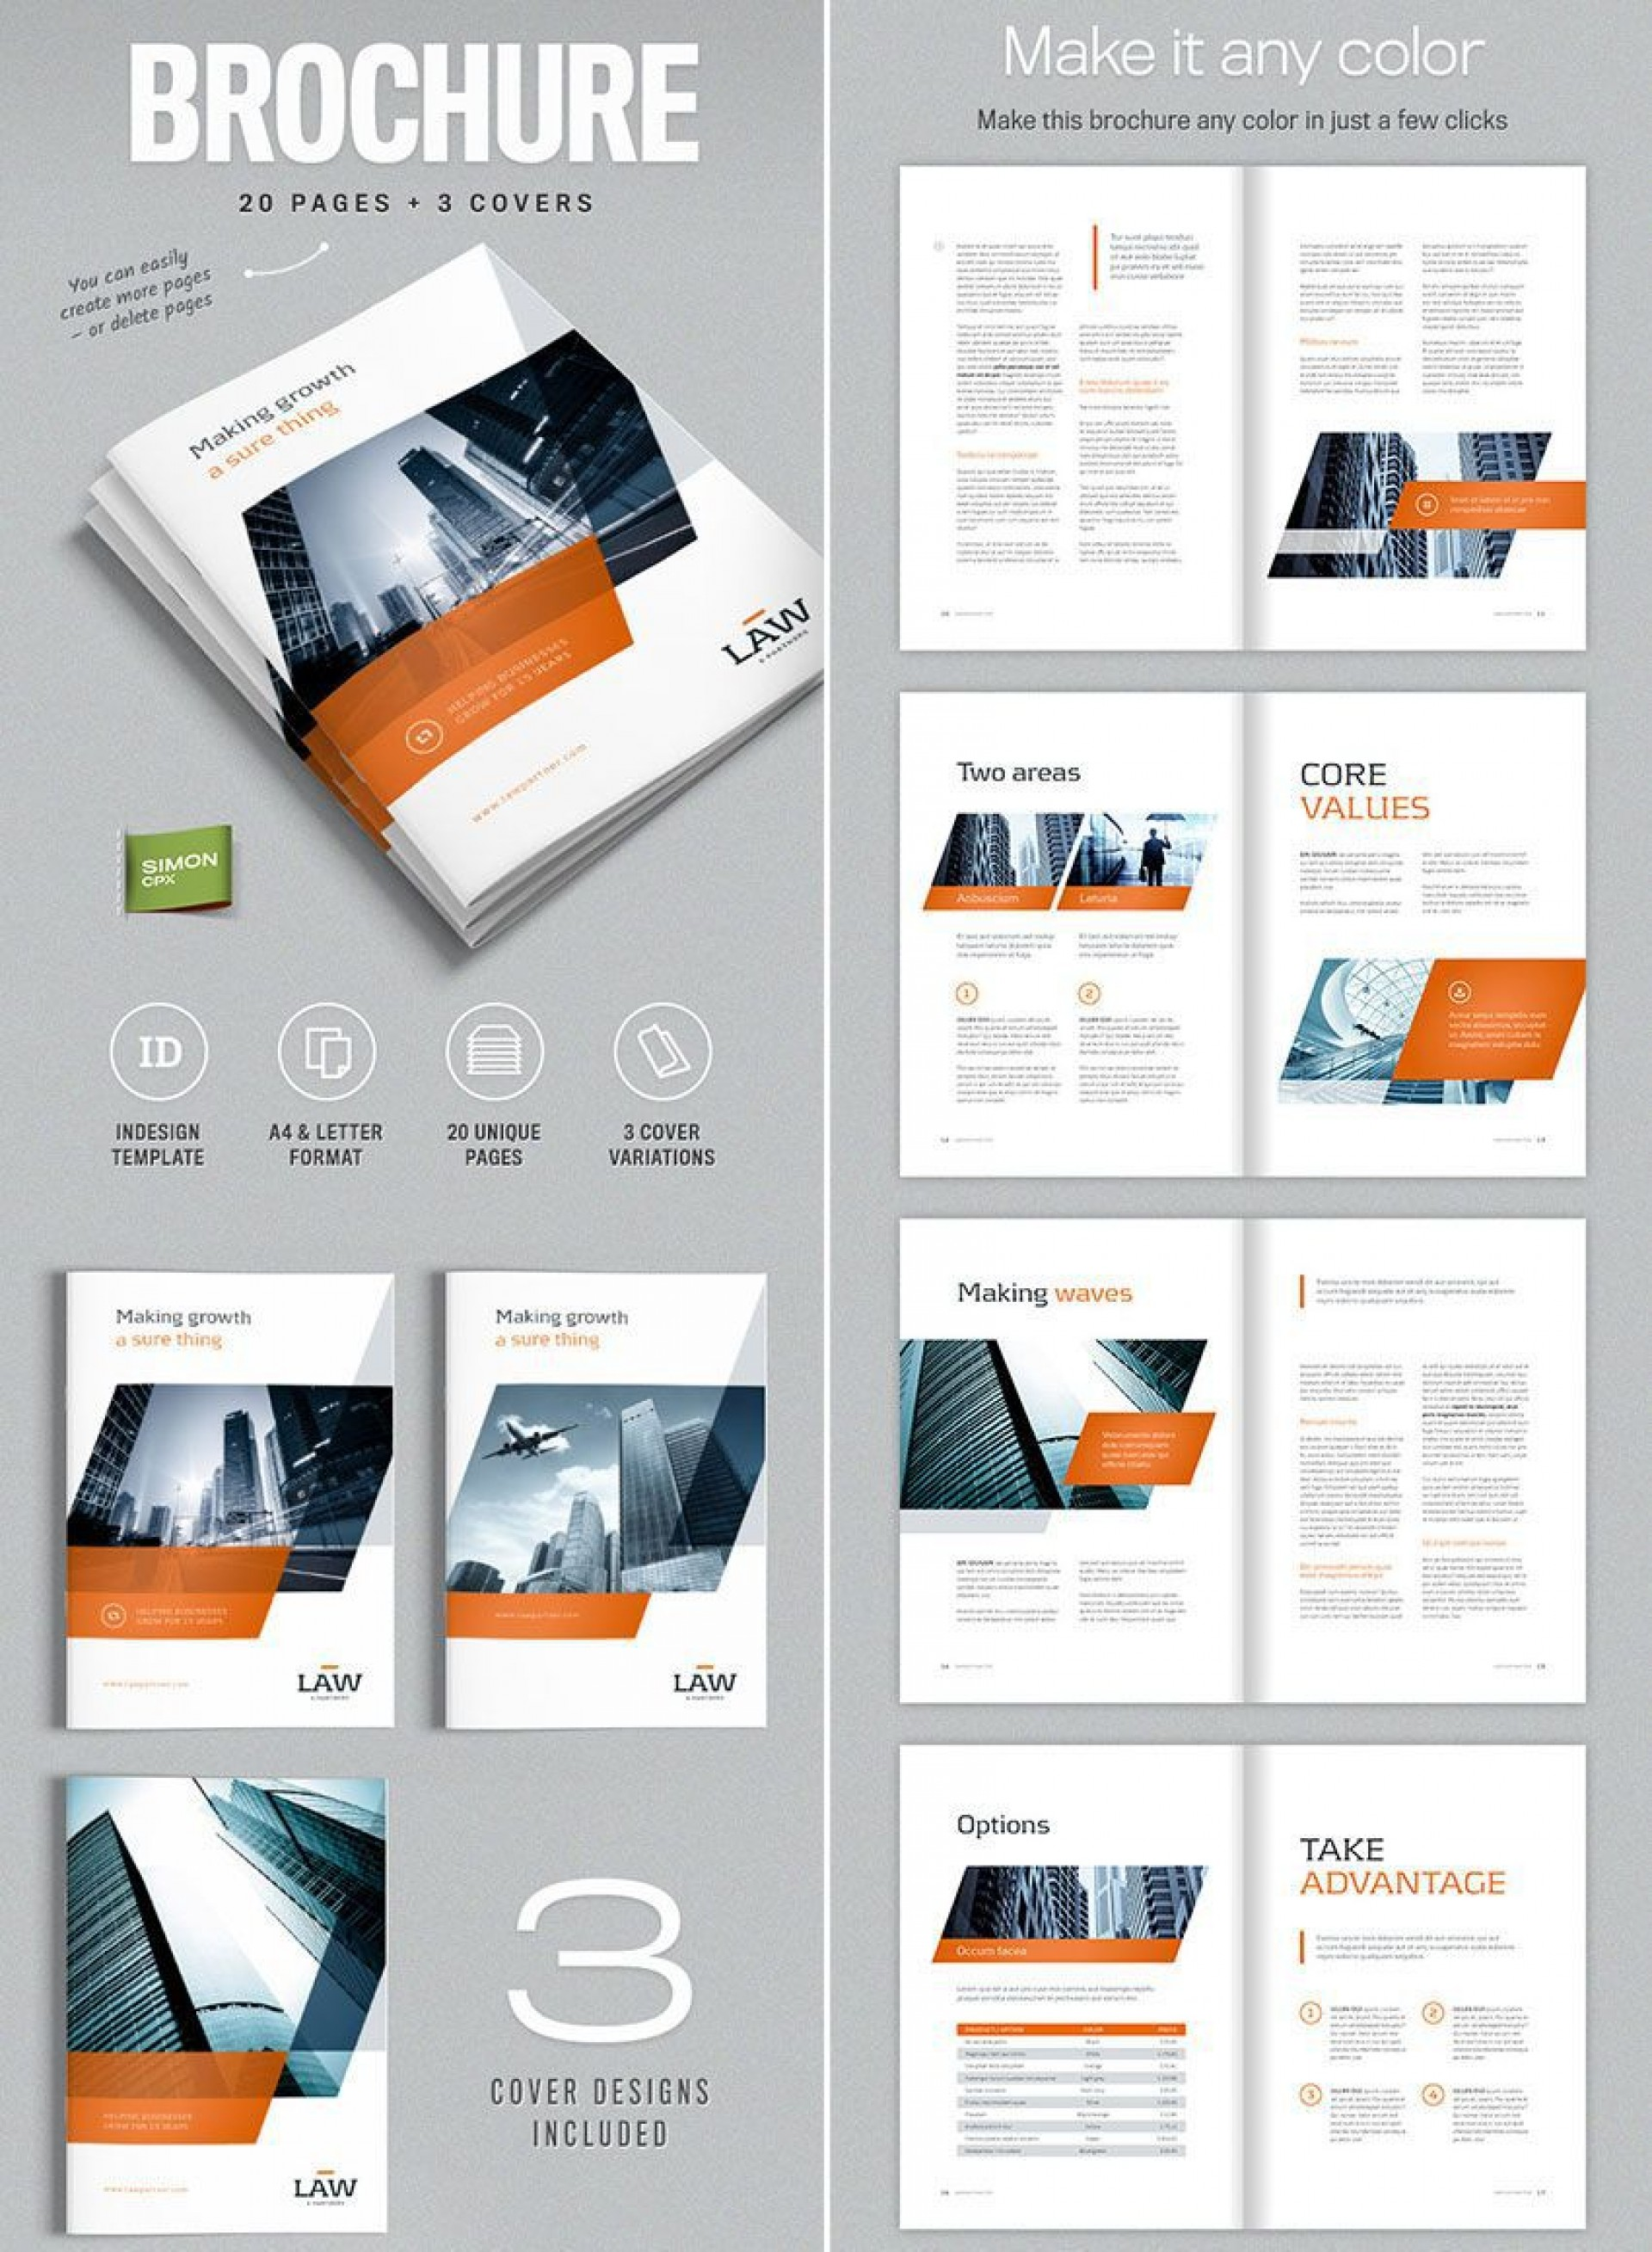 003 Stunning Adobe Indesign Brochure Template Free Download Example 1920